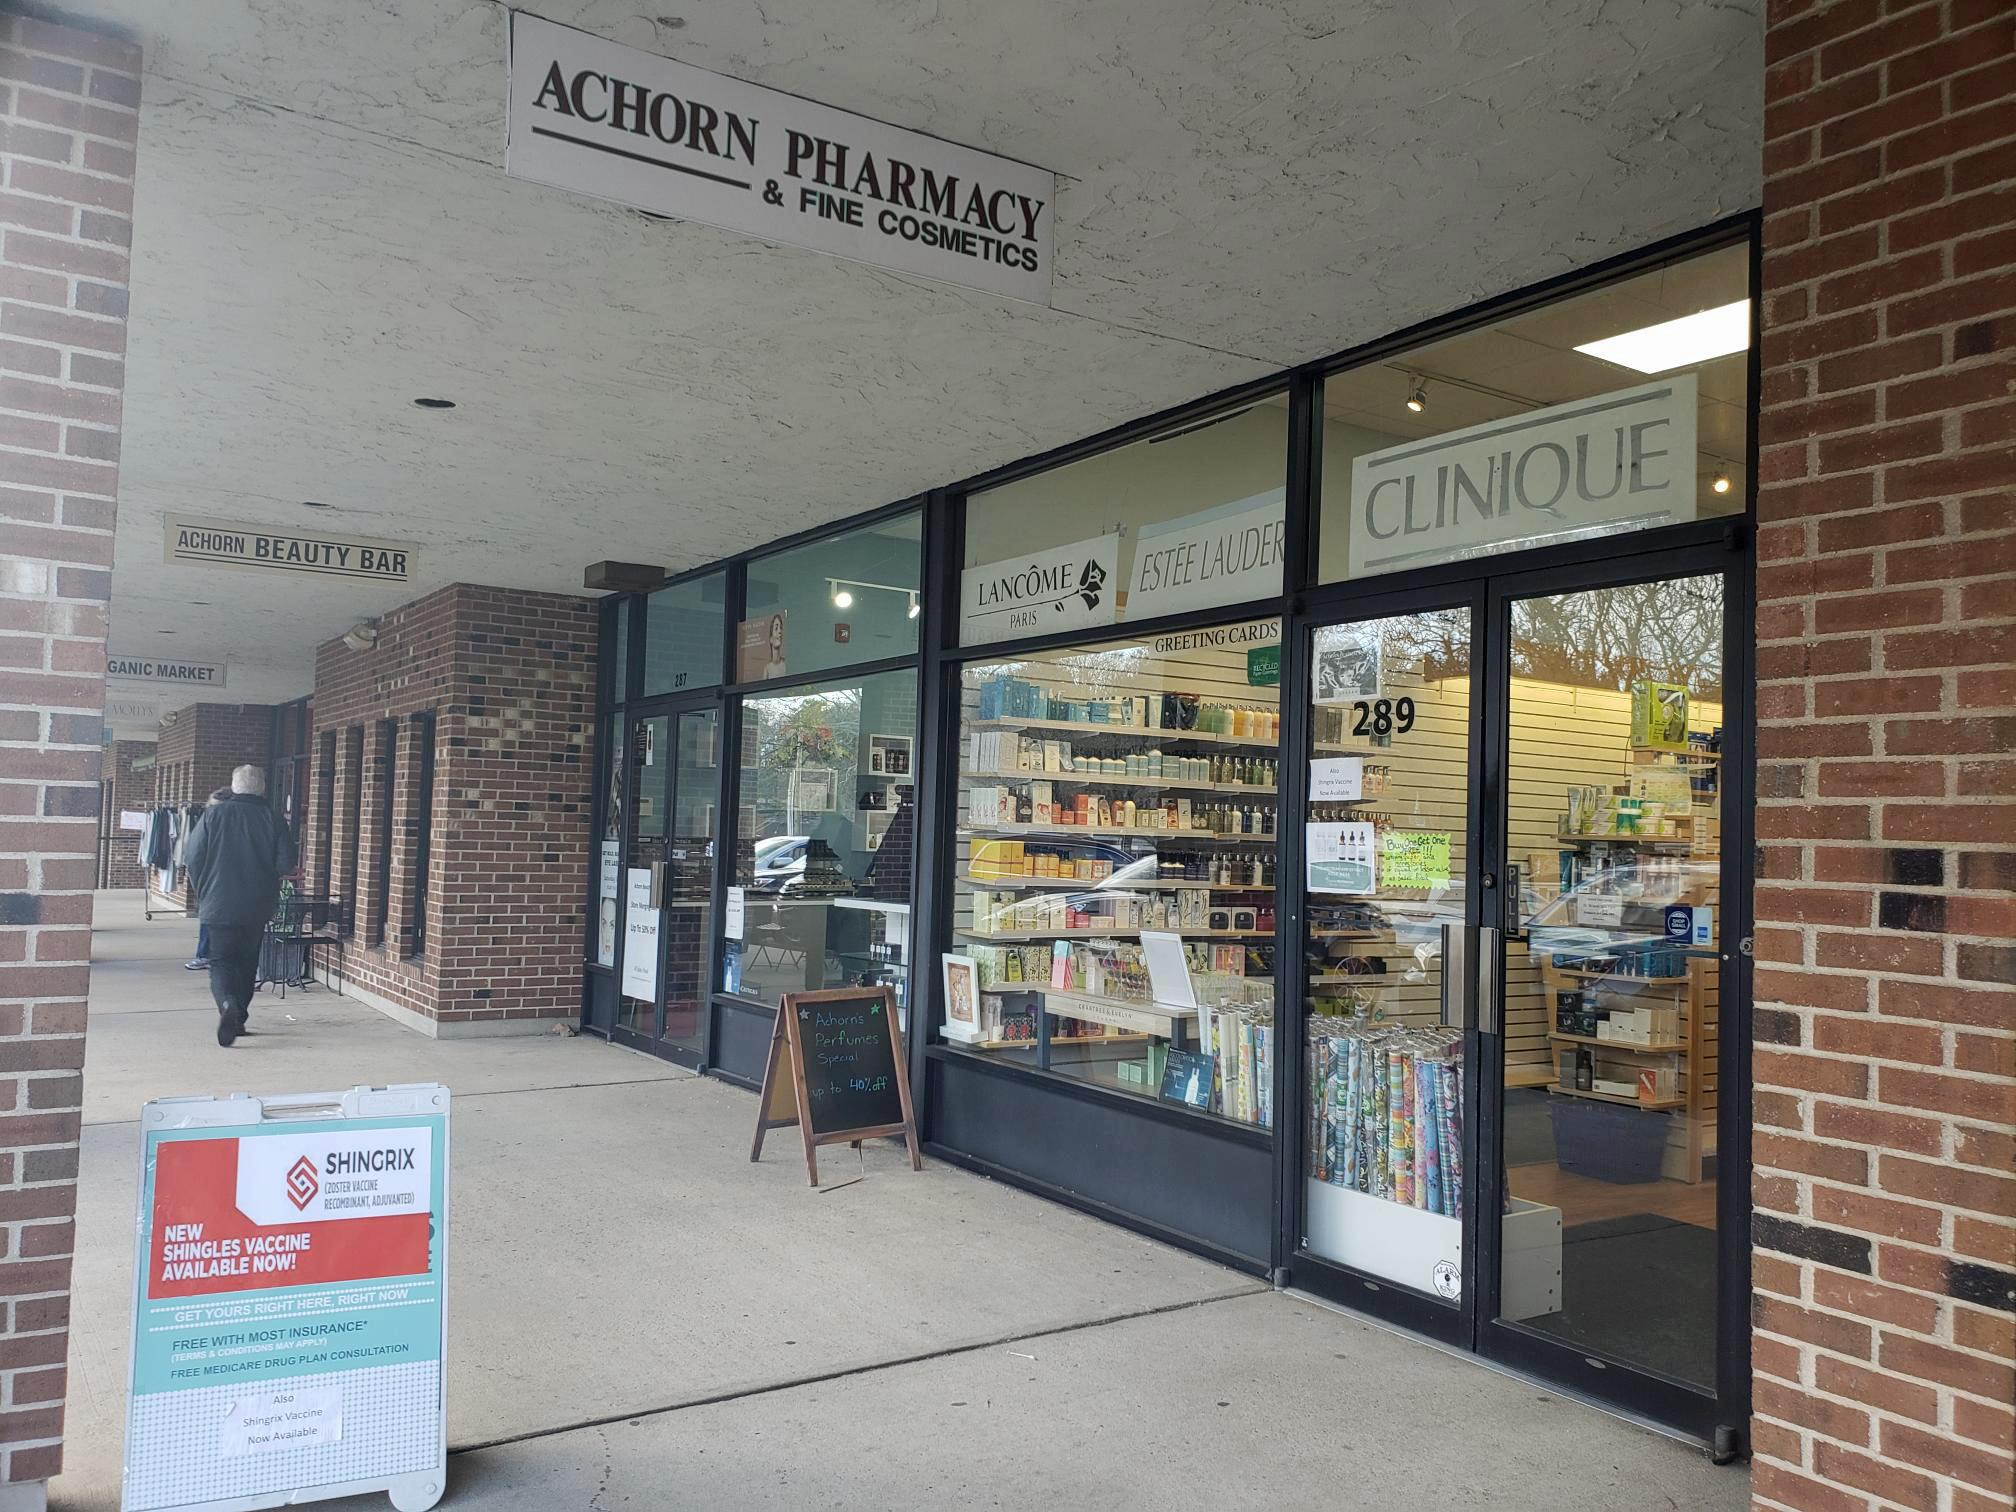 Achorn pharmacy, beauty bar set to merge - Westport News